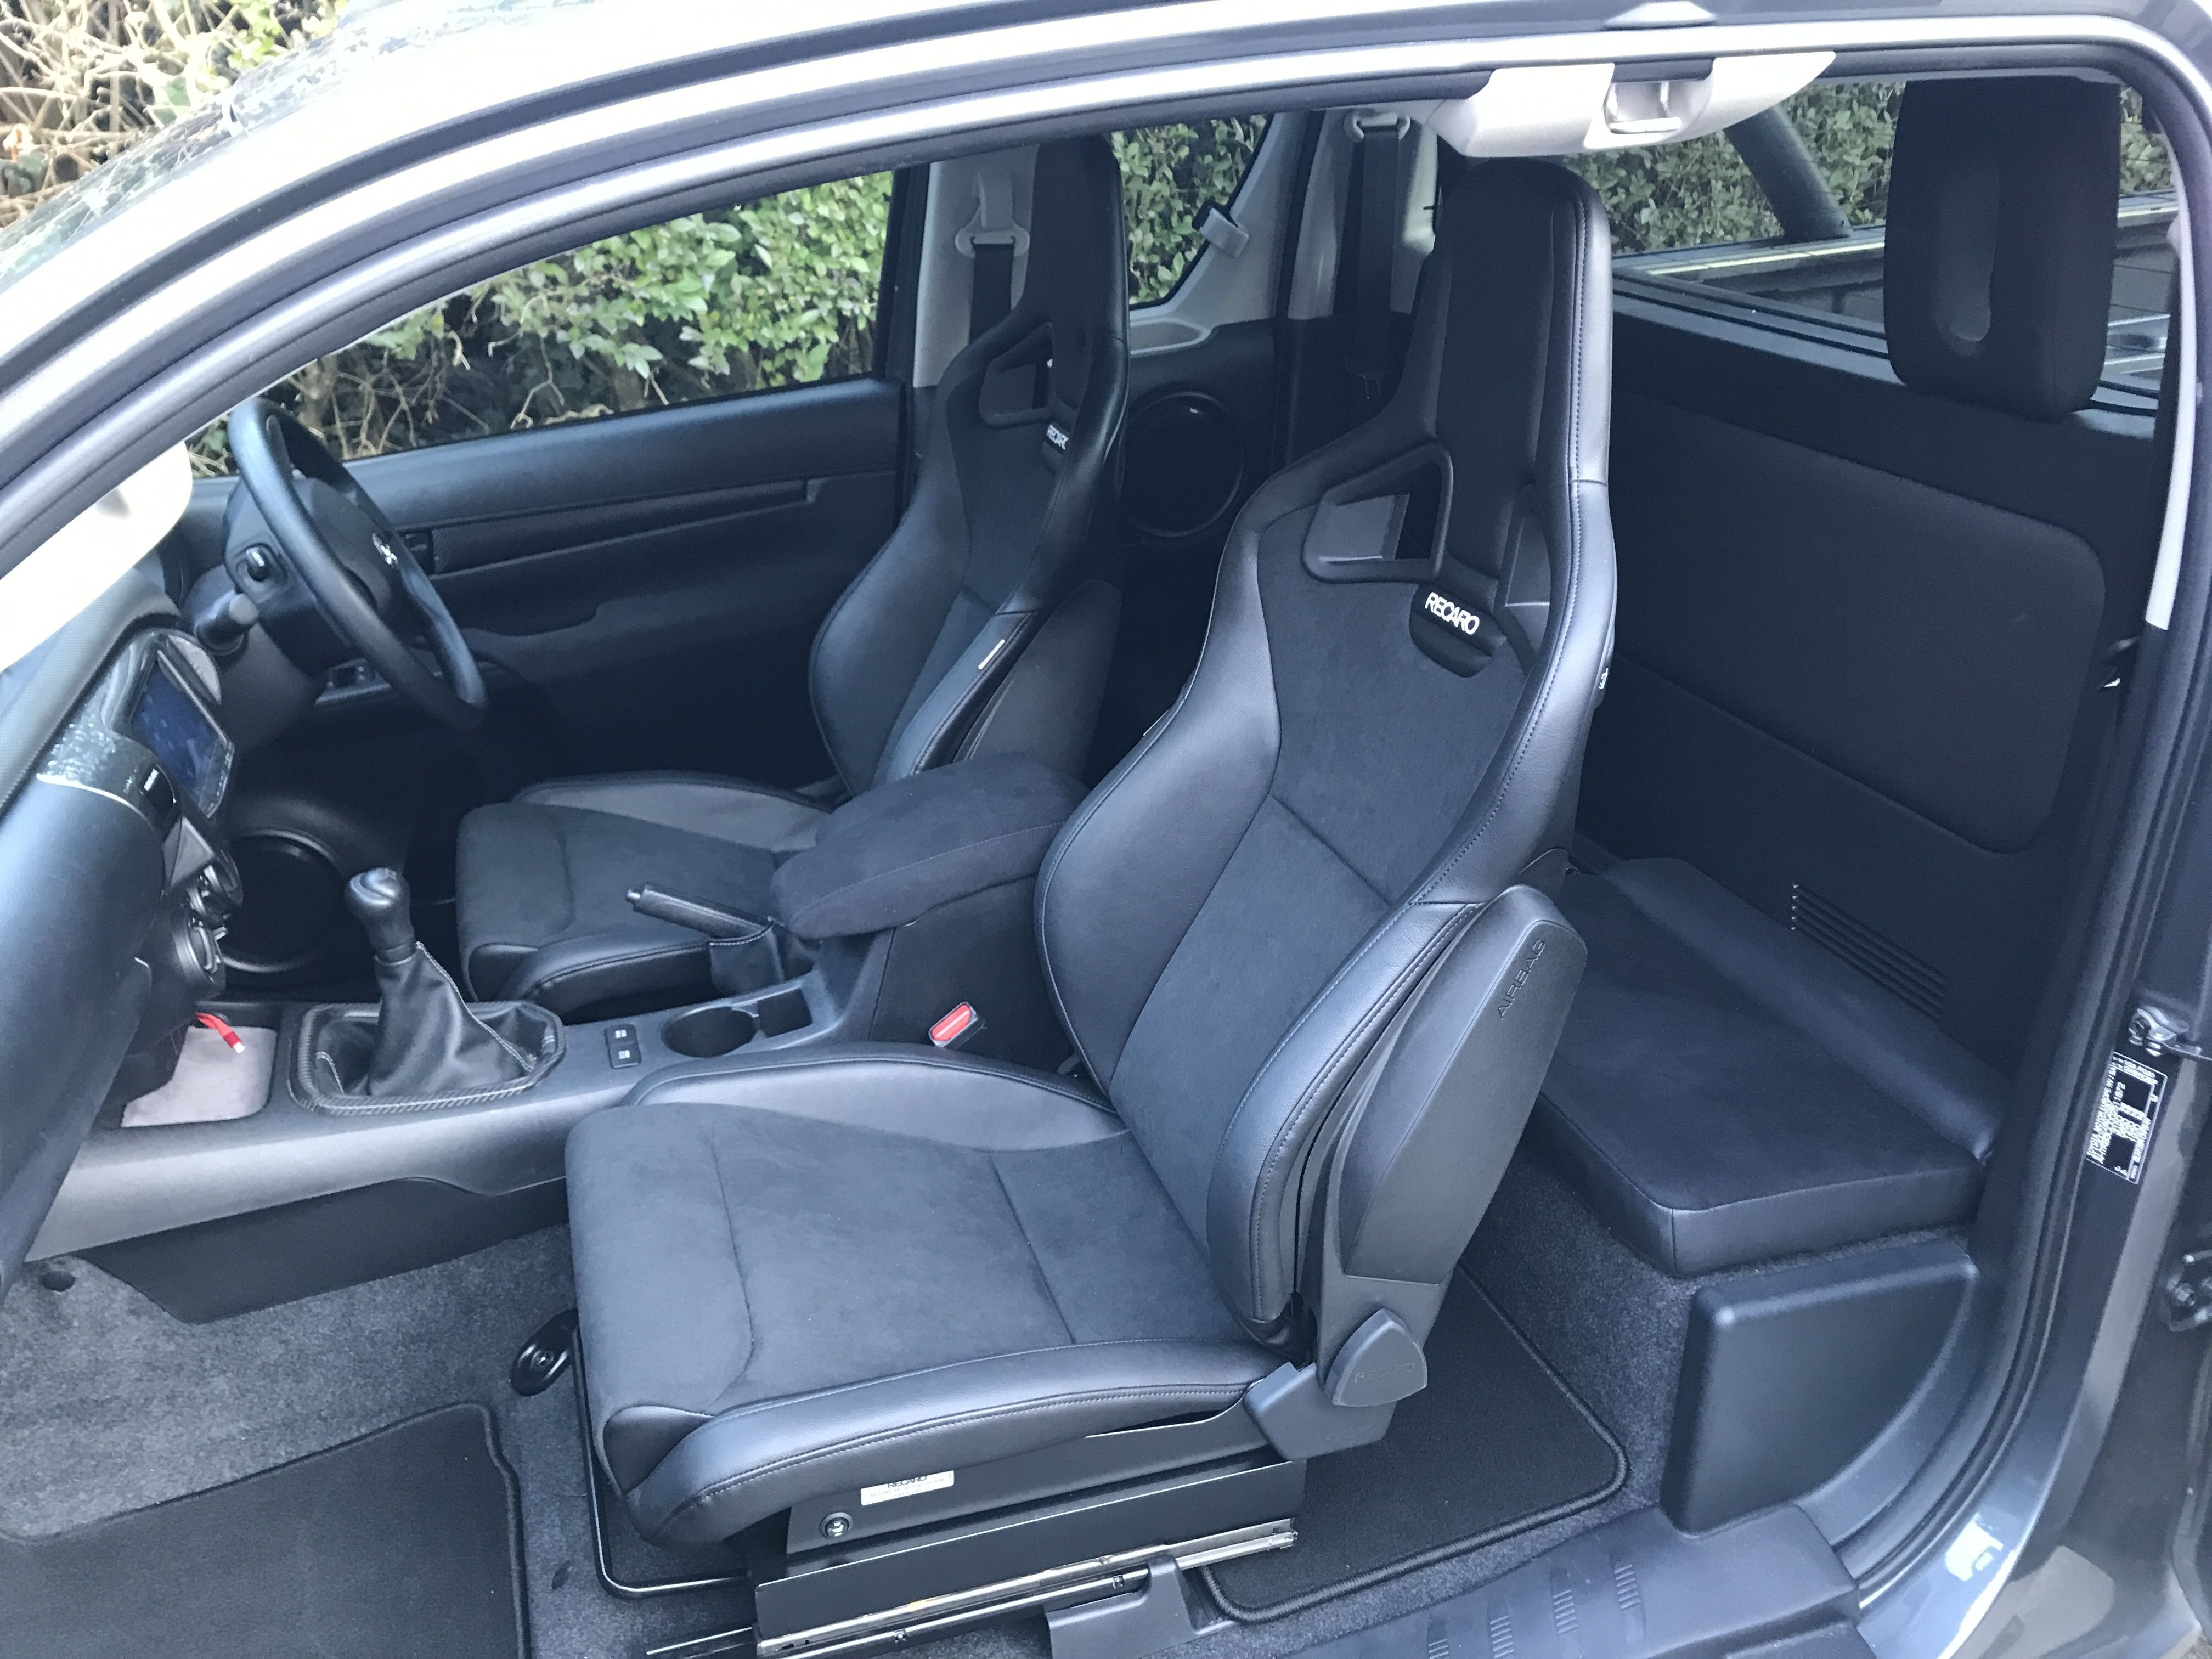 40e1e9014fc We supplied these stunning Recaro Sportster CS seats with airbags to be  fitted in our customers Toyota Hilux. What a result!